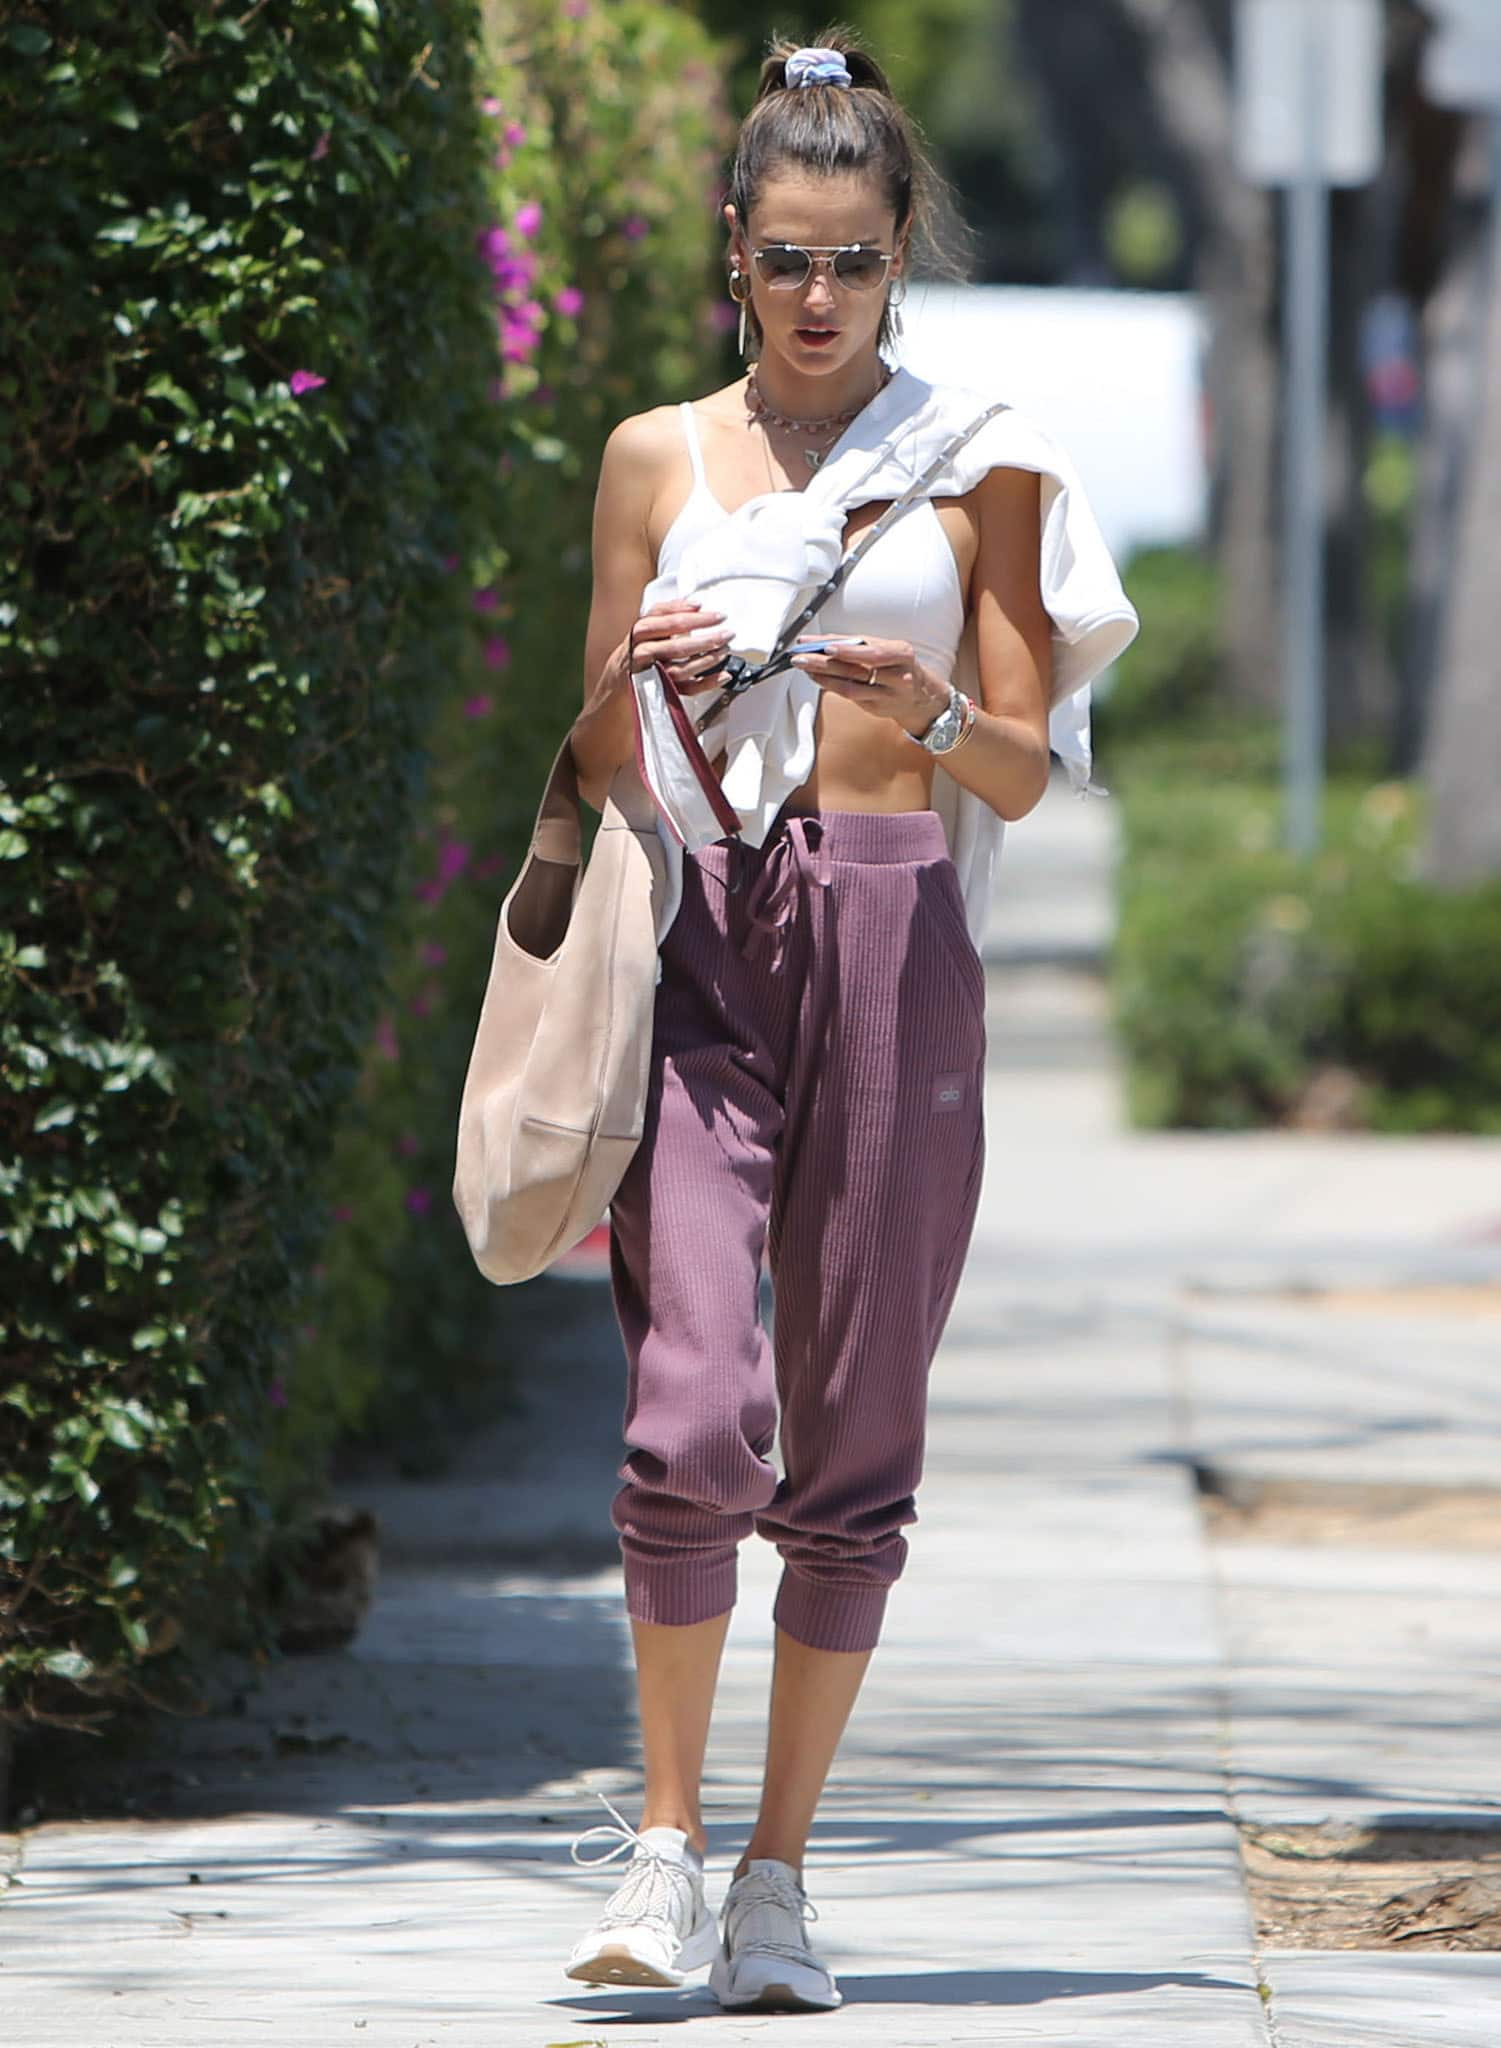 Alessandra Ambrosio heads to Pilates class in Alo Yoga bralette and ribbed sweatpants on May 4, 2021